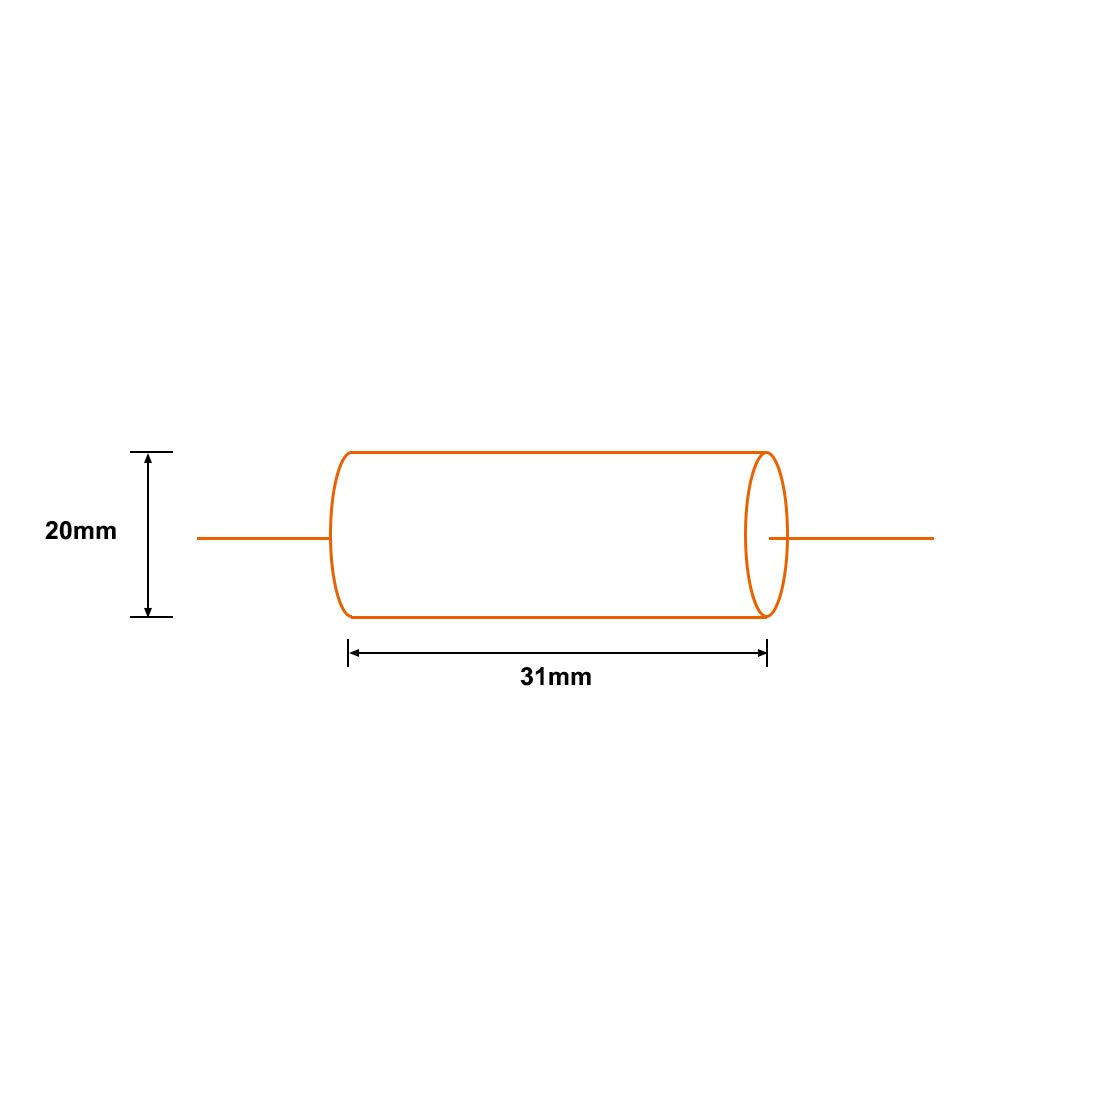 uxcell Film Capacitor 100V DC 6.8uF Axial Polyester Film Capacitor for Audio Divider Yellow